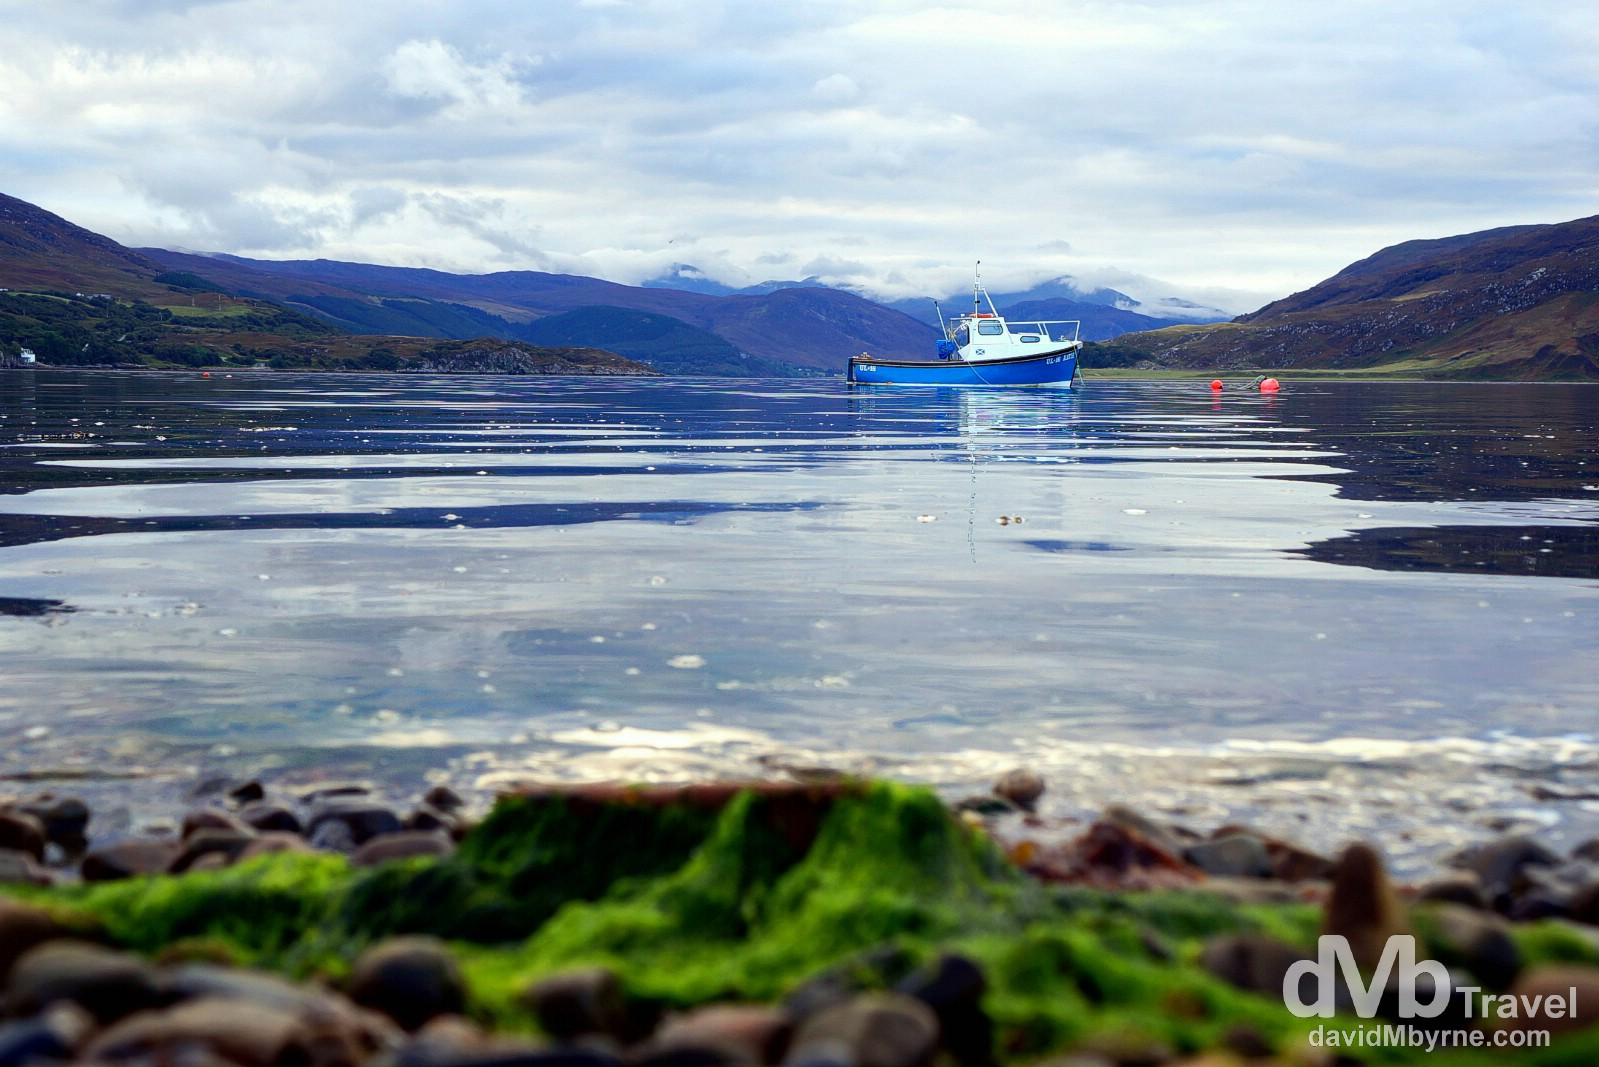 A lone boat in the harbour of Ullapool, Highlands, Scotland. September 16, 2014.